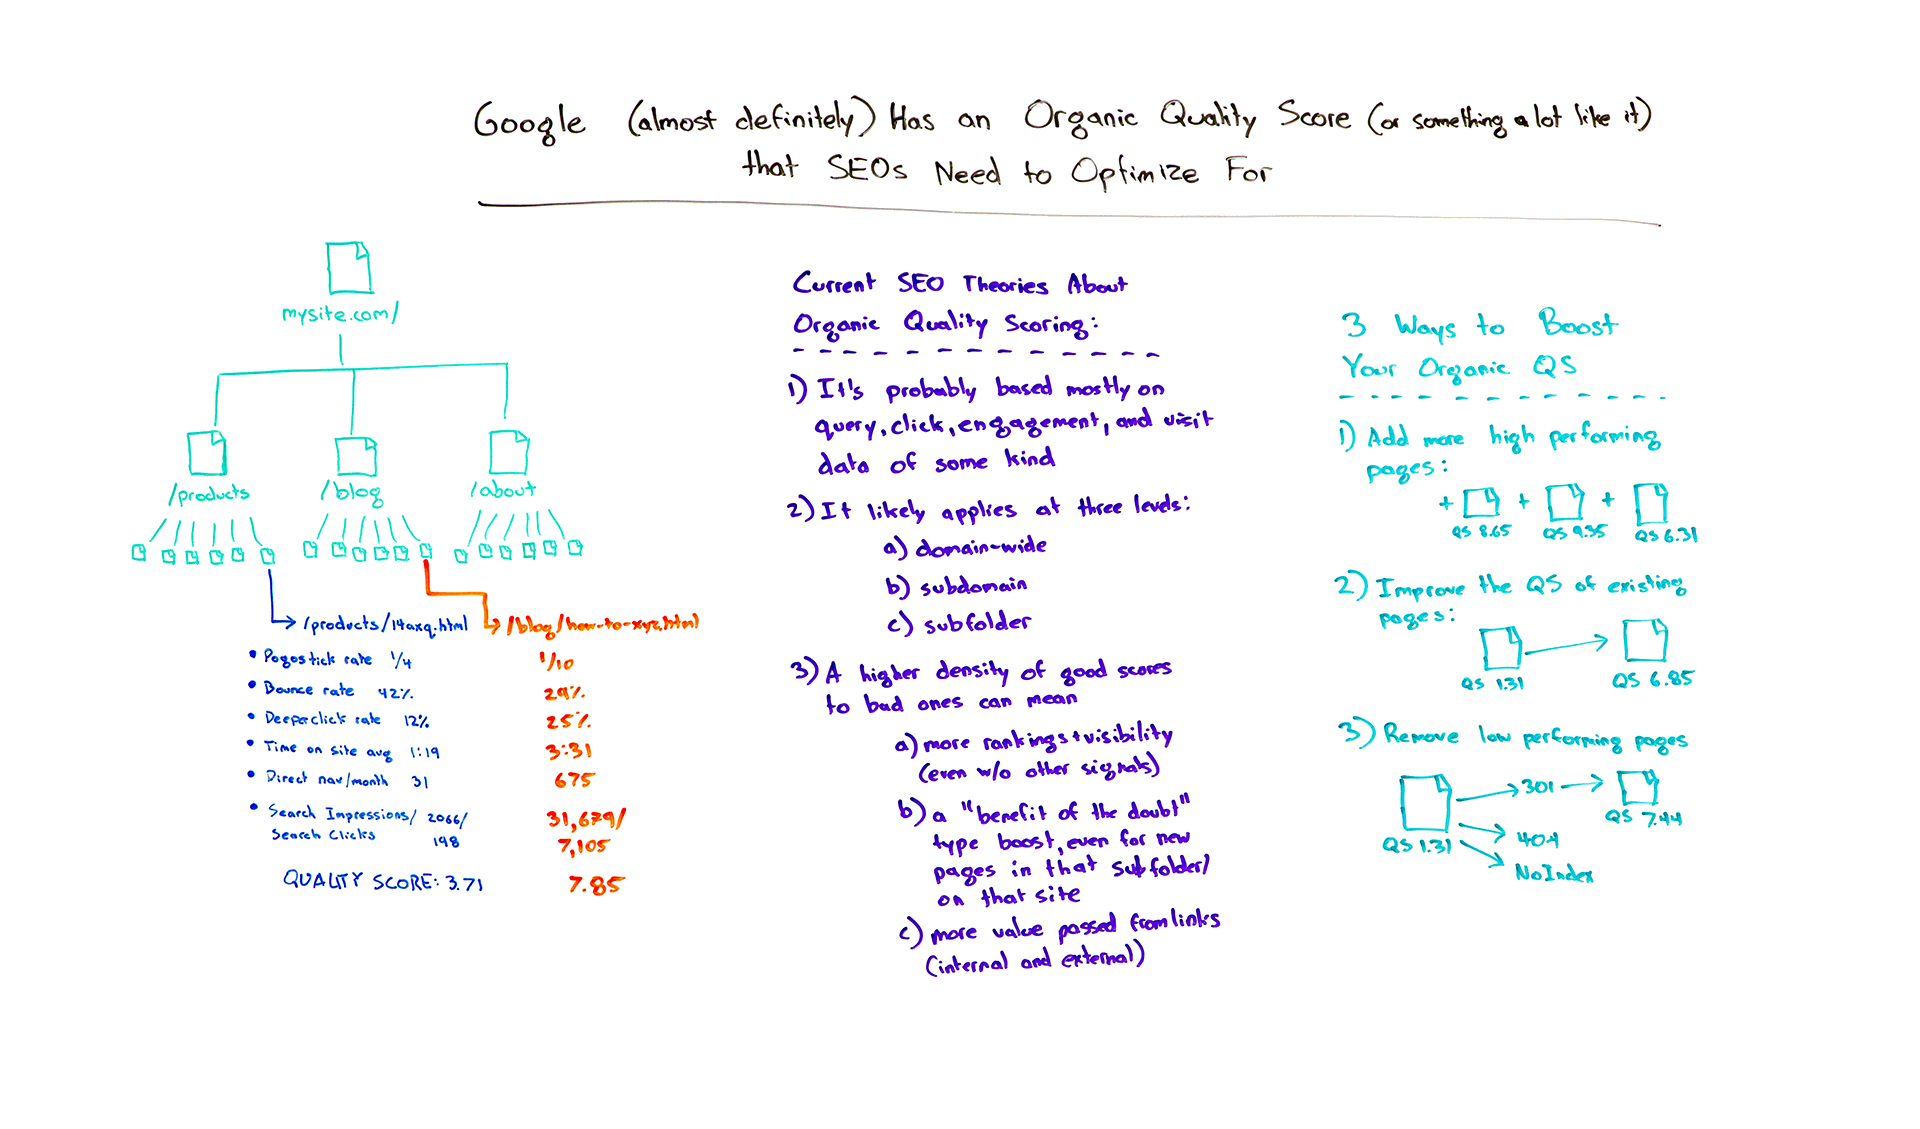 How To Optimize For Googles Organic Quality Score Moz